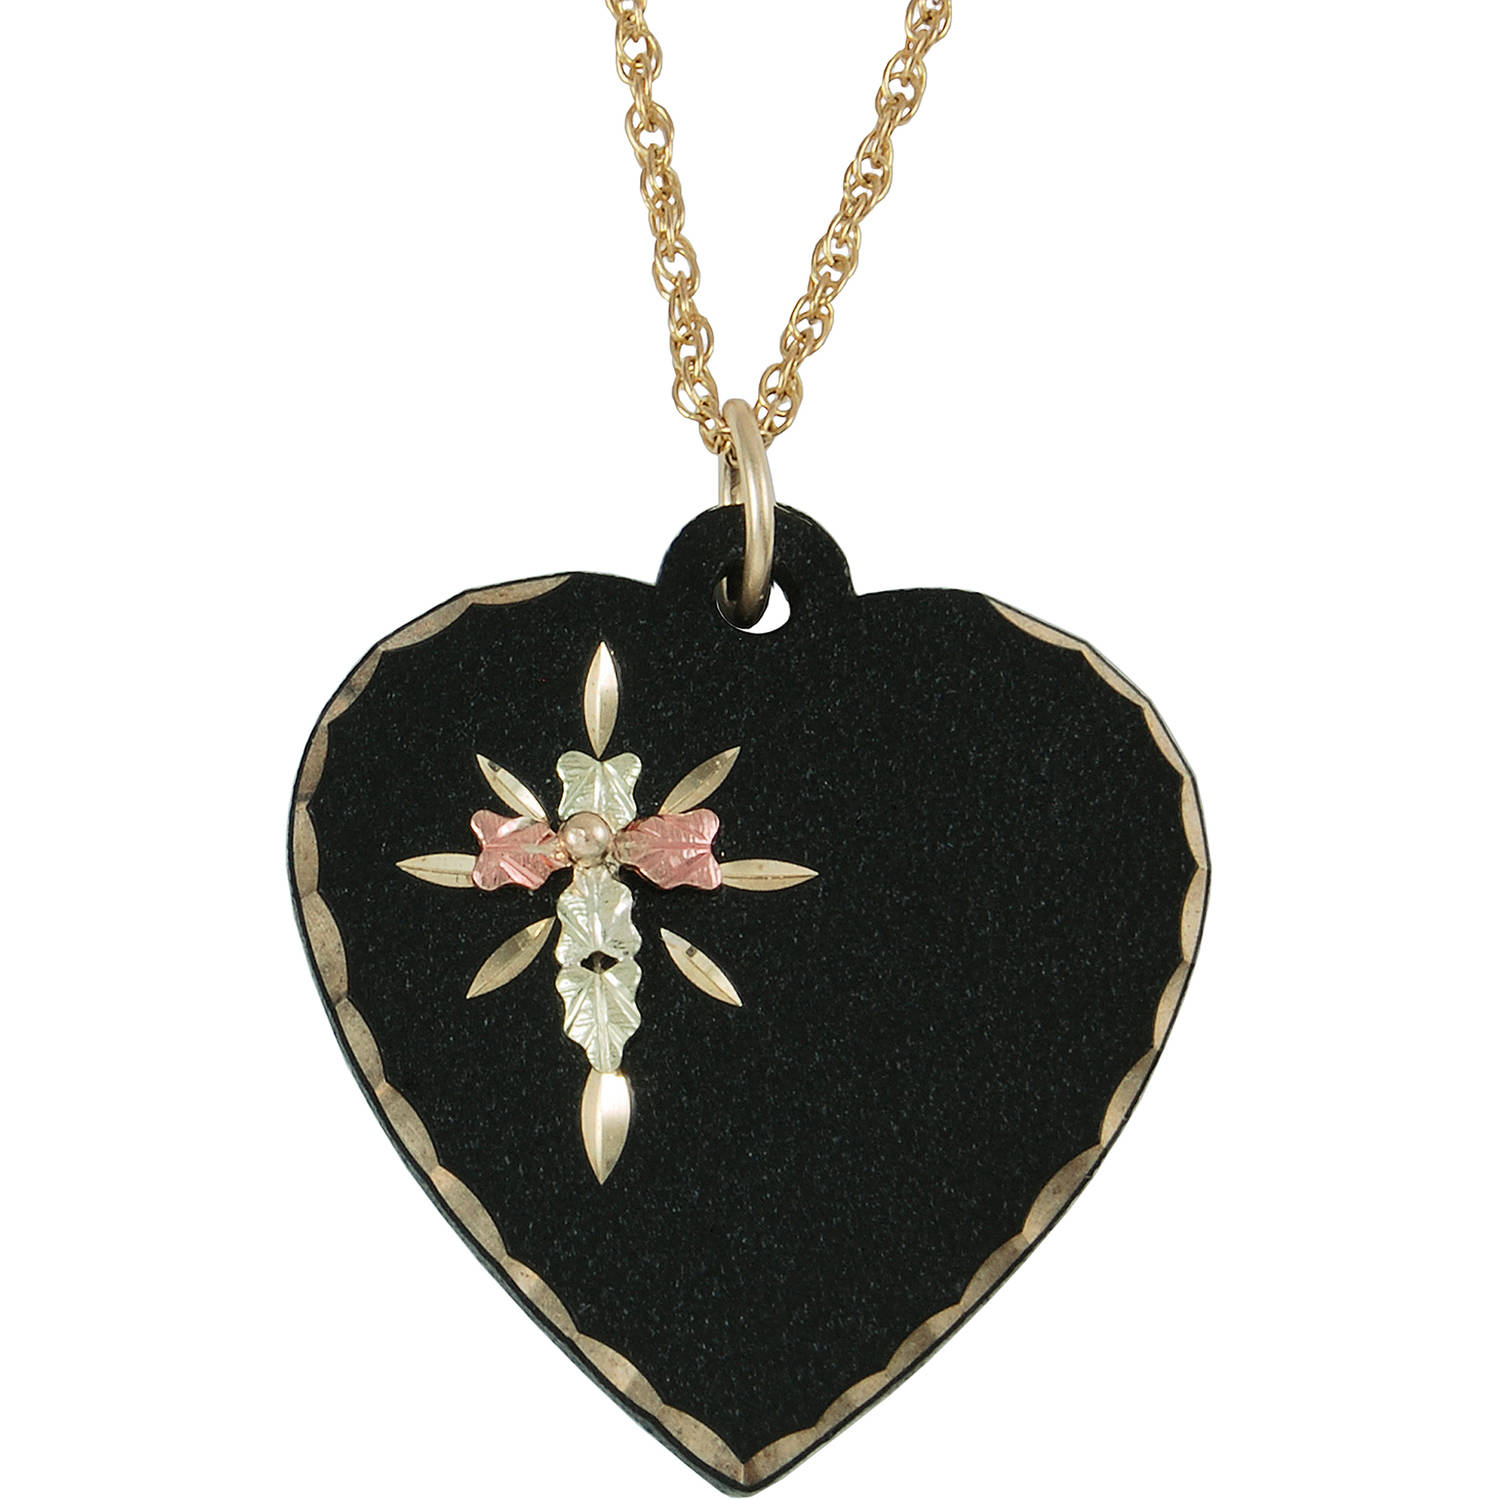 Black Hills Gold Black Powder-Coated Gold-Tone 10kt and 12kt Gold Accented Cross on Heart Pendant, 18""